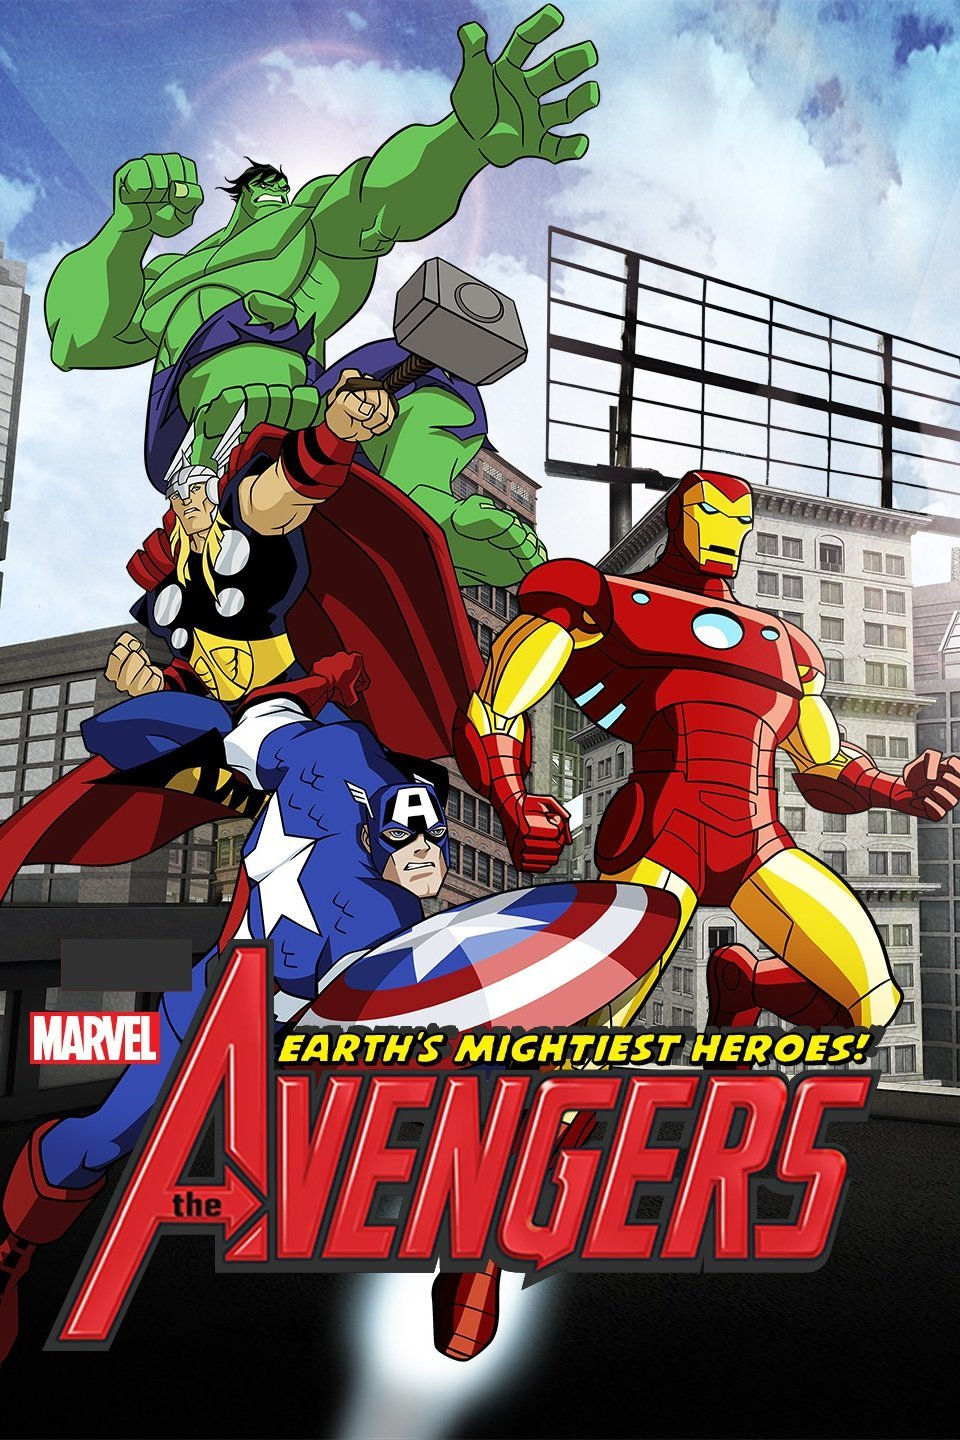 The Avengers: Earth's Mightiest Heroes (Season 2) thumburl